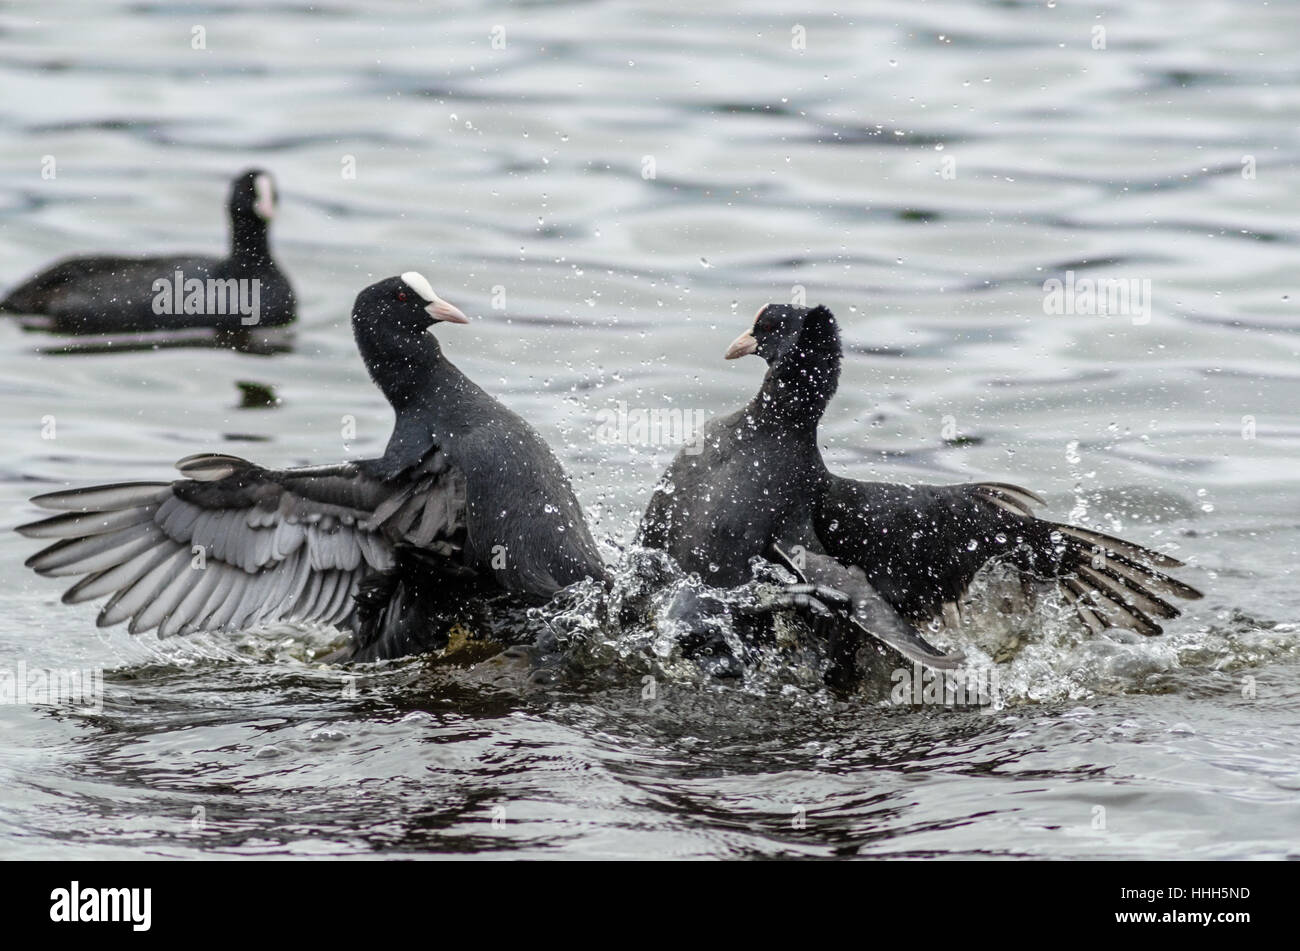 Two Coots (Fulica atra) fight for dominance over an area of water - Stock Image